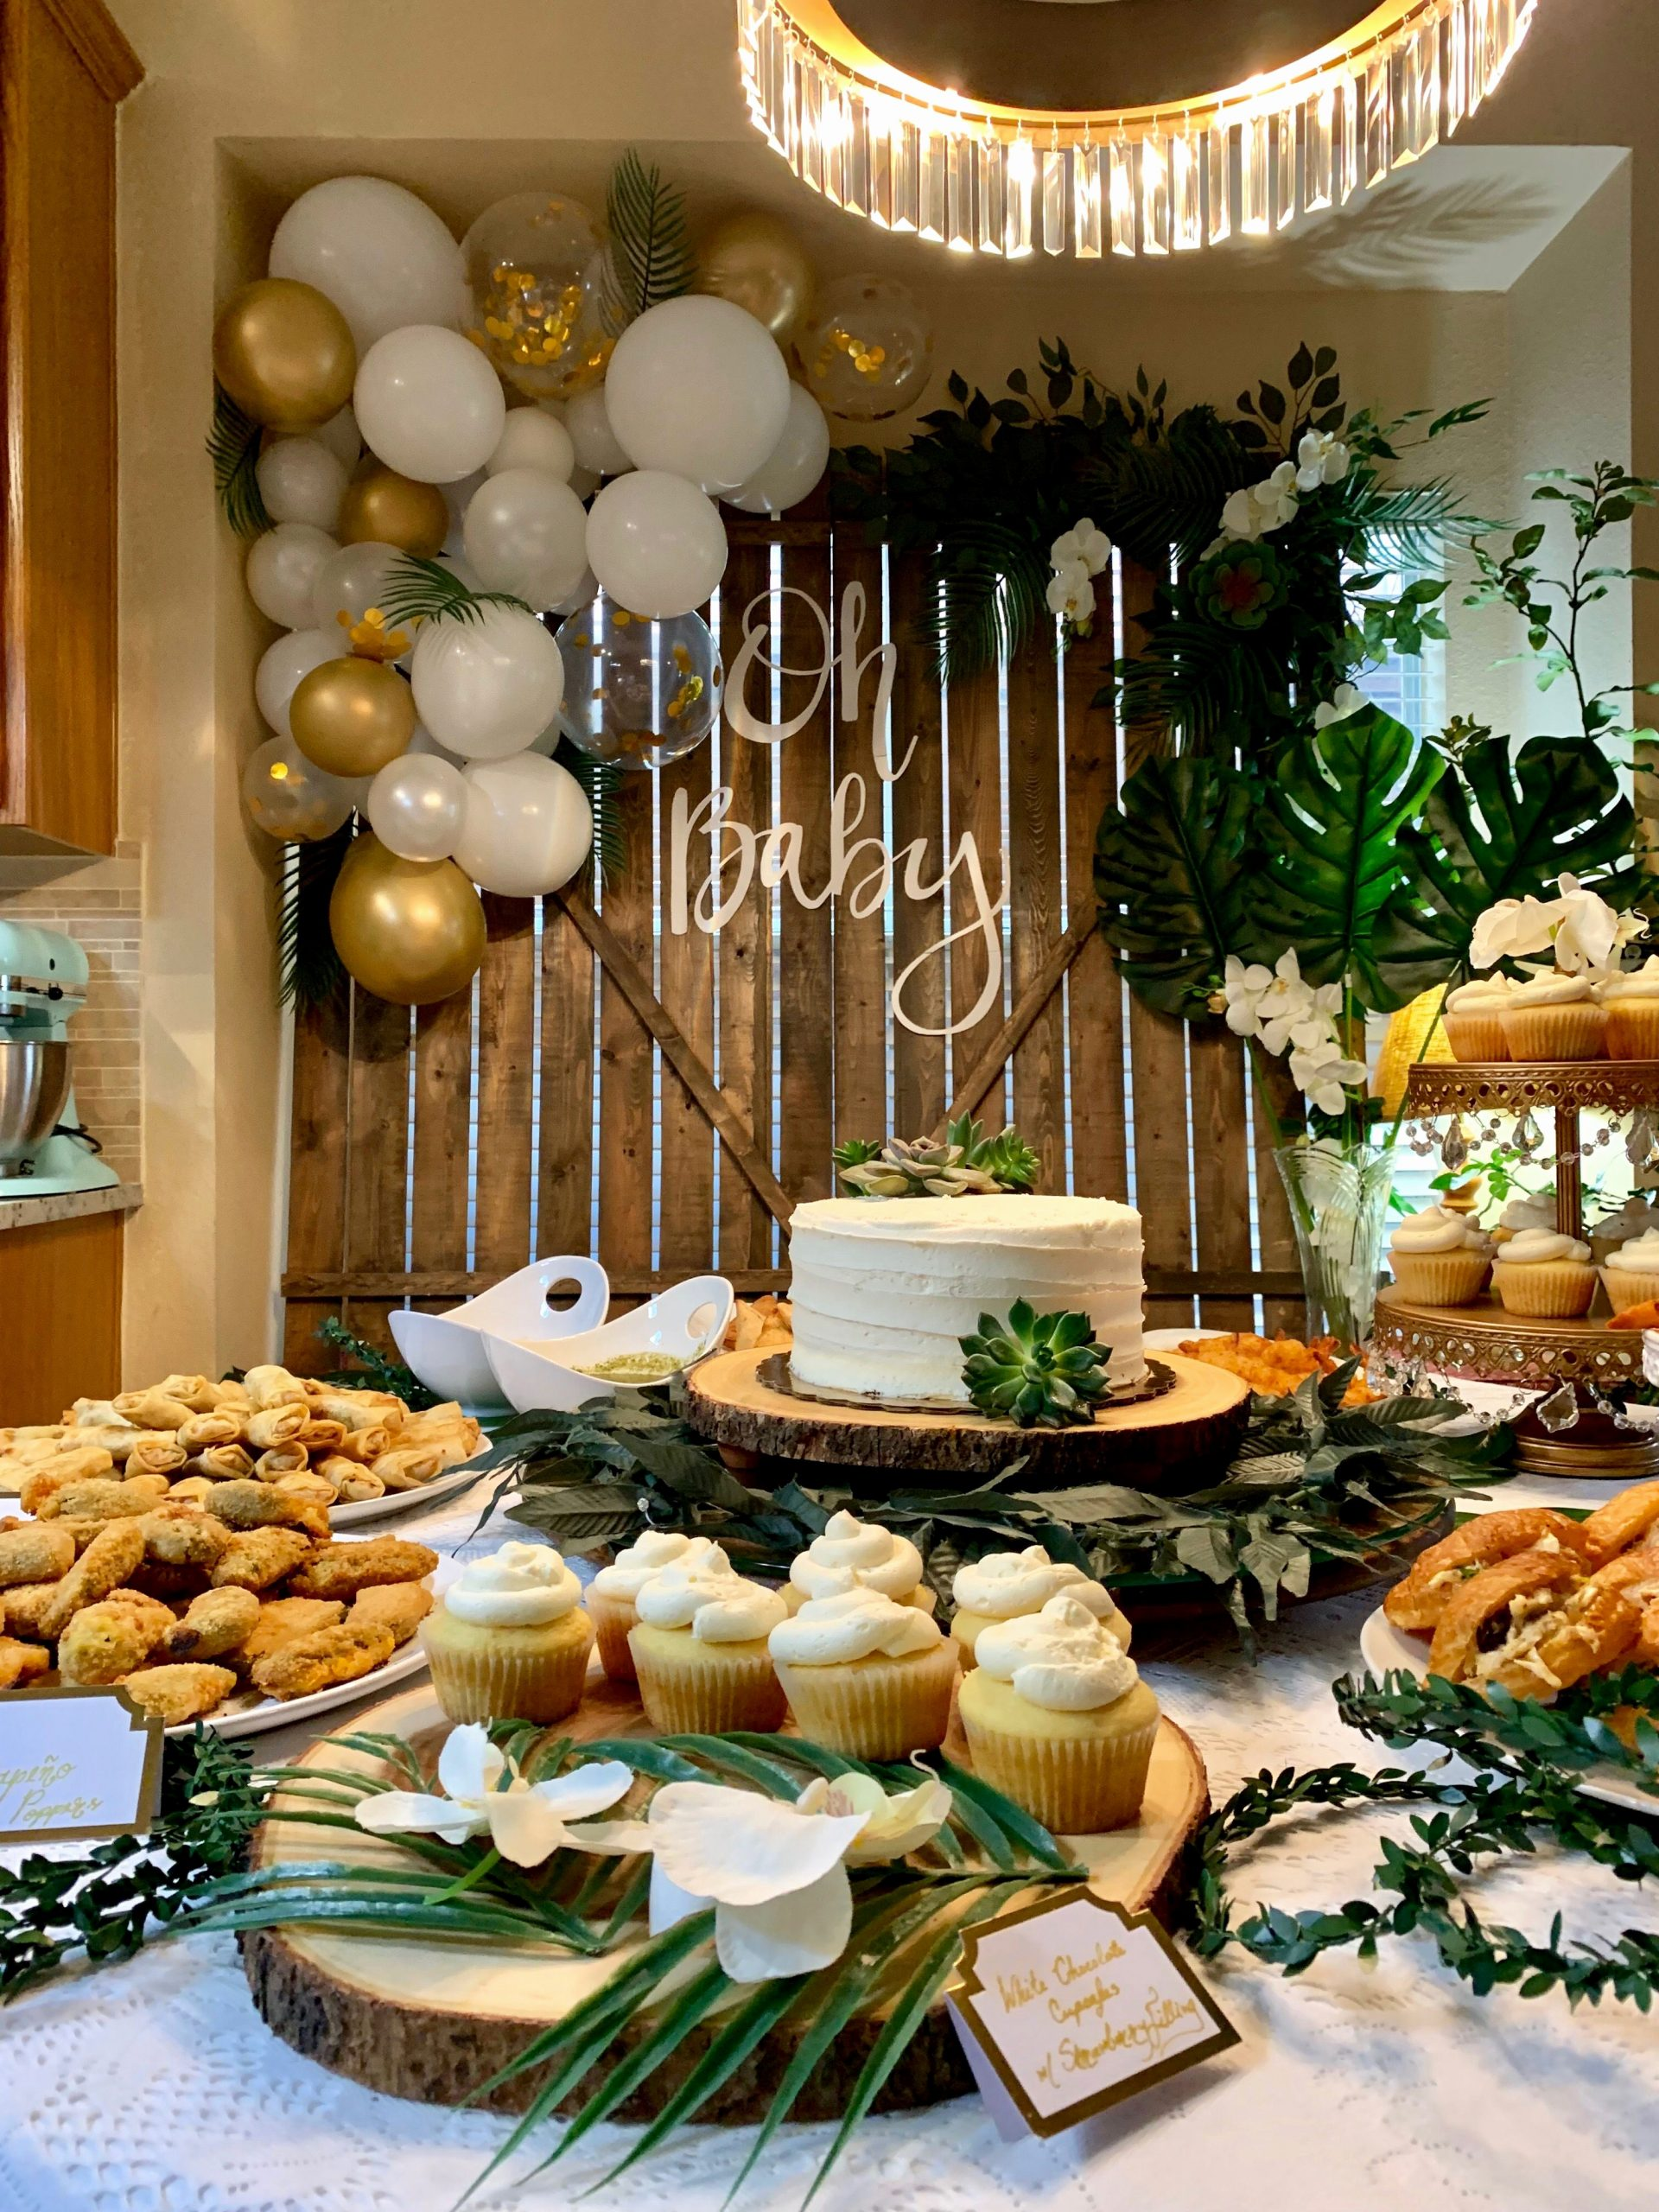 Green and Gold Birthday Decoration Ideas Awesome Green White and Gold Party